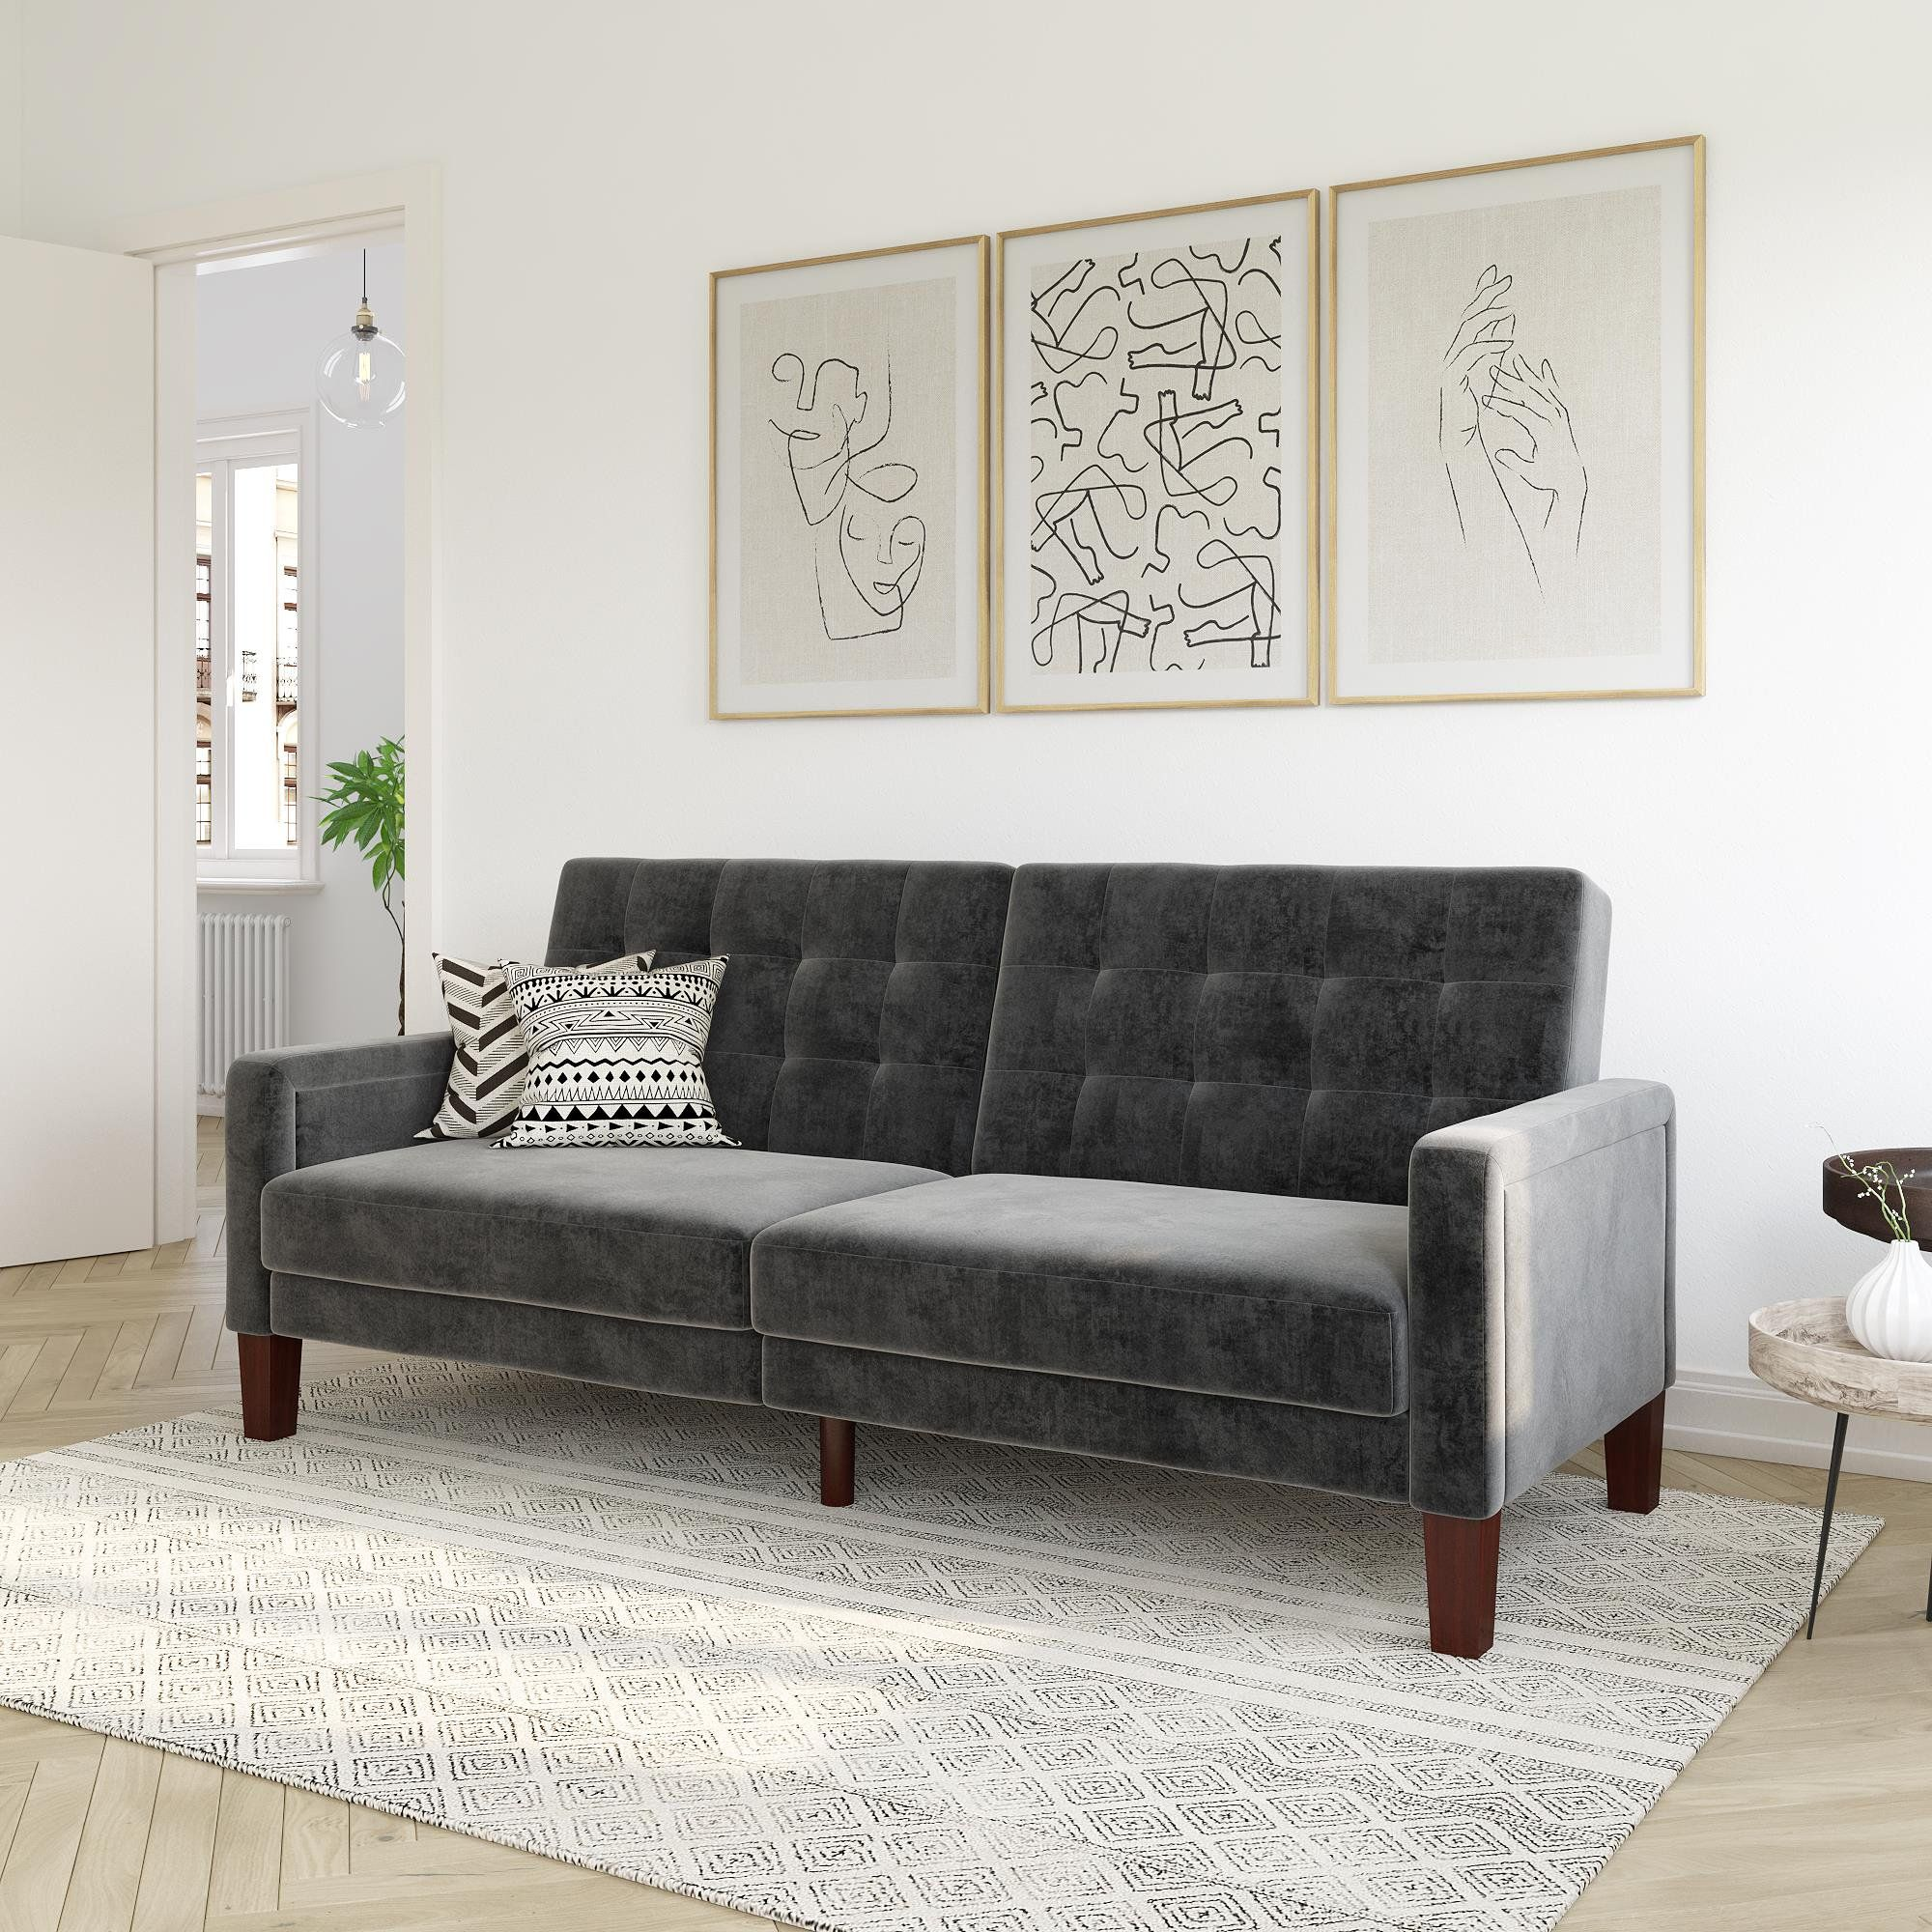 15bbefb901cbc0f213326e301bc0215a - Better Homes And Gardens Porter Futon Assembly Instructions